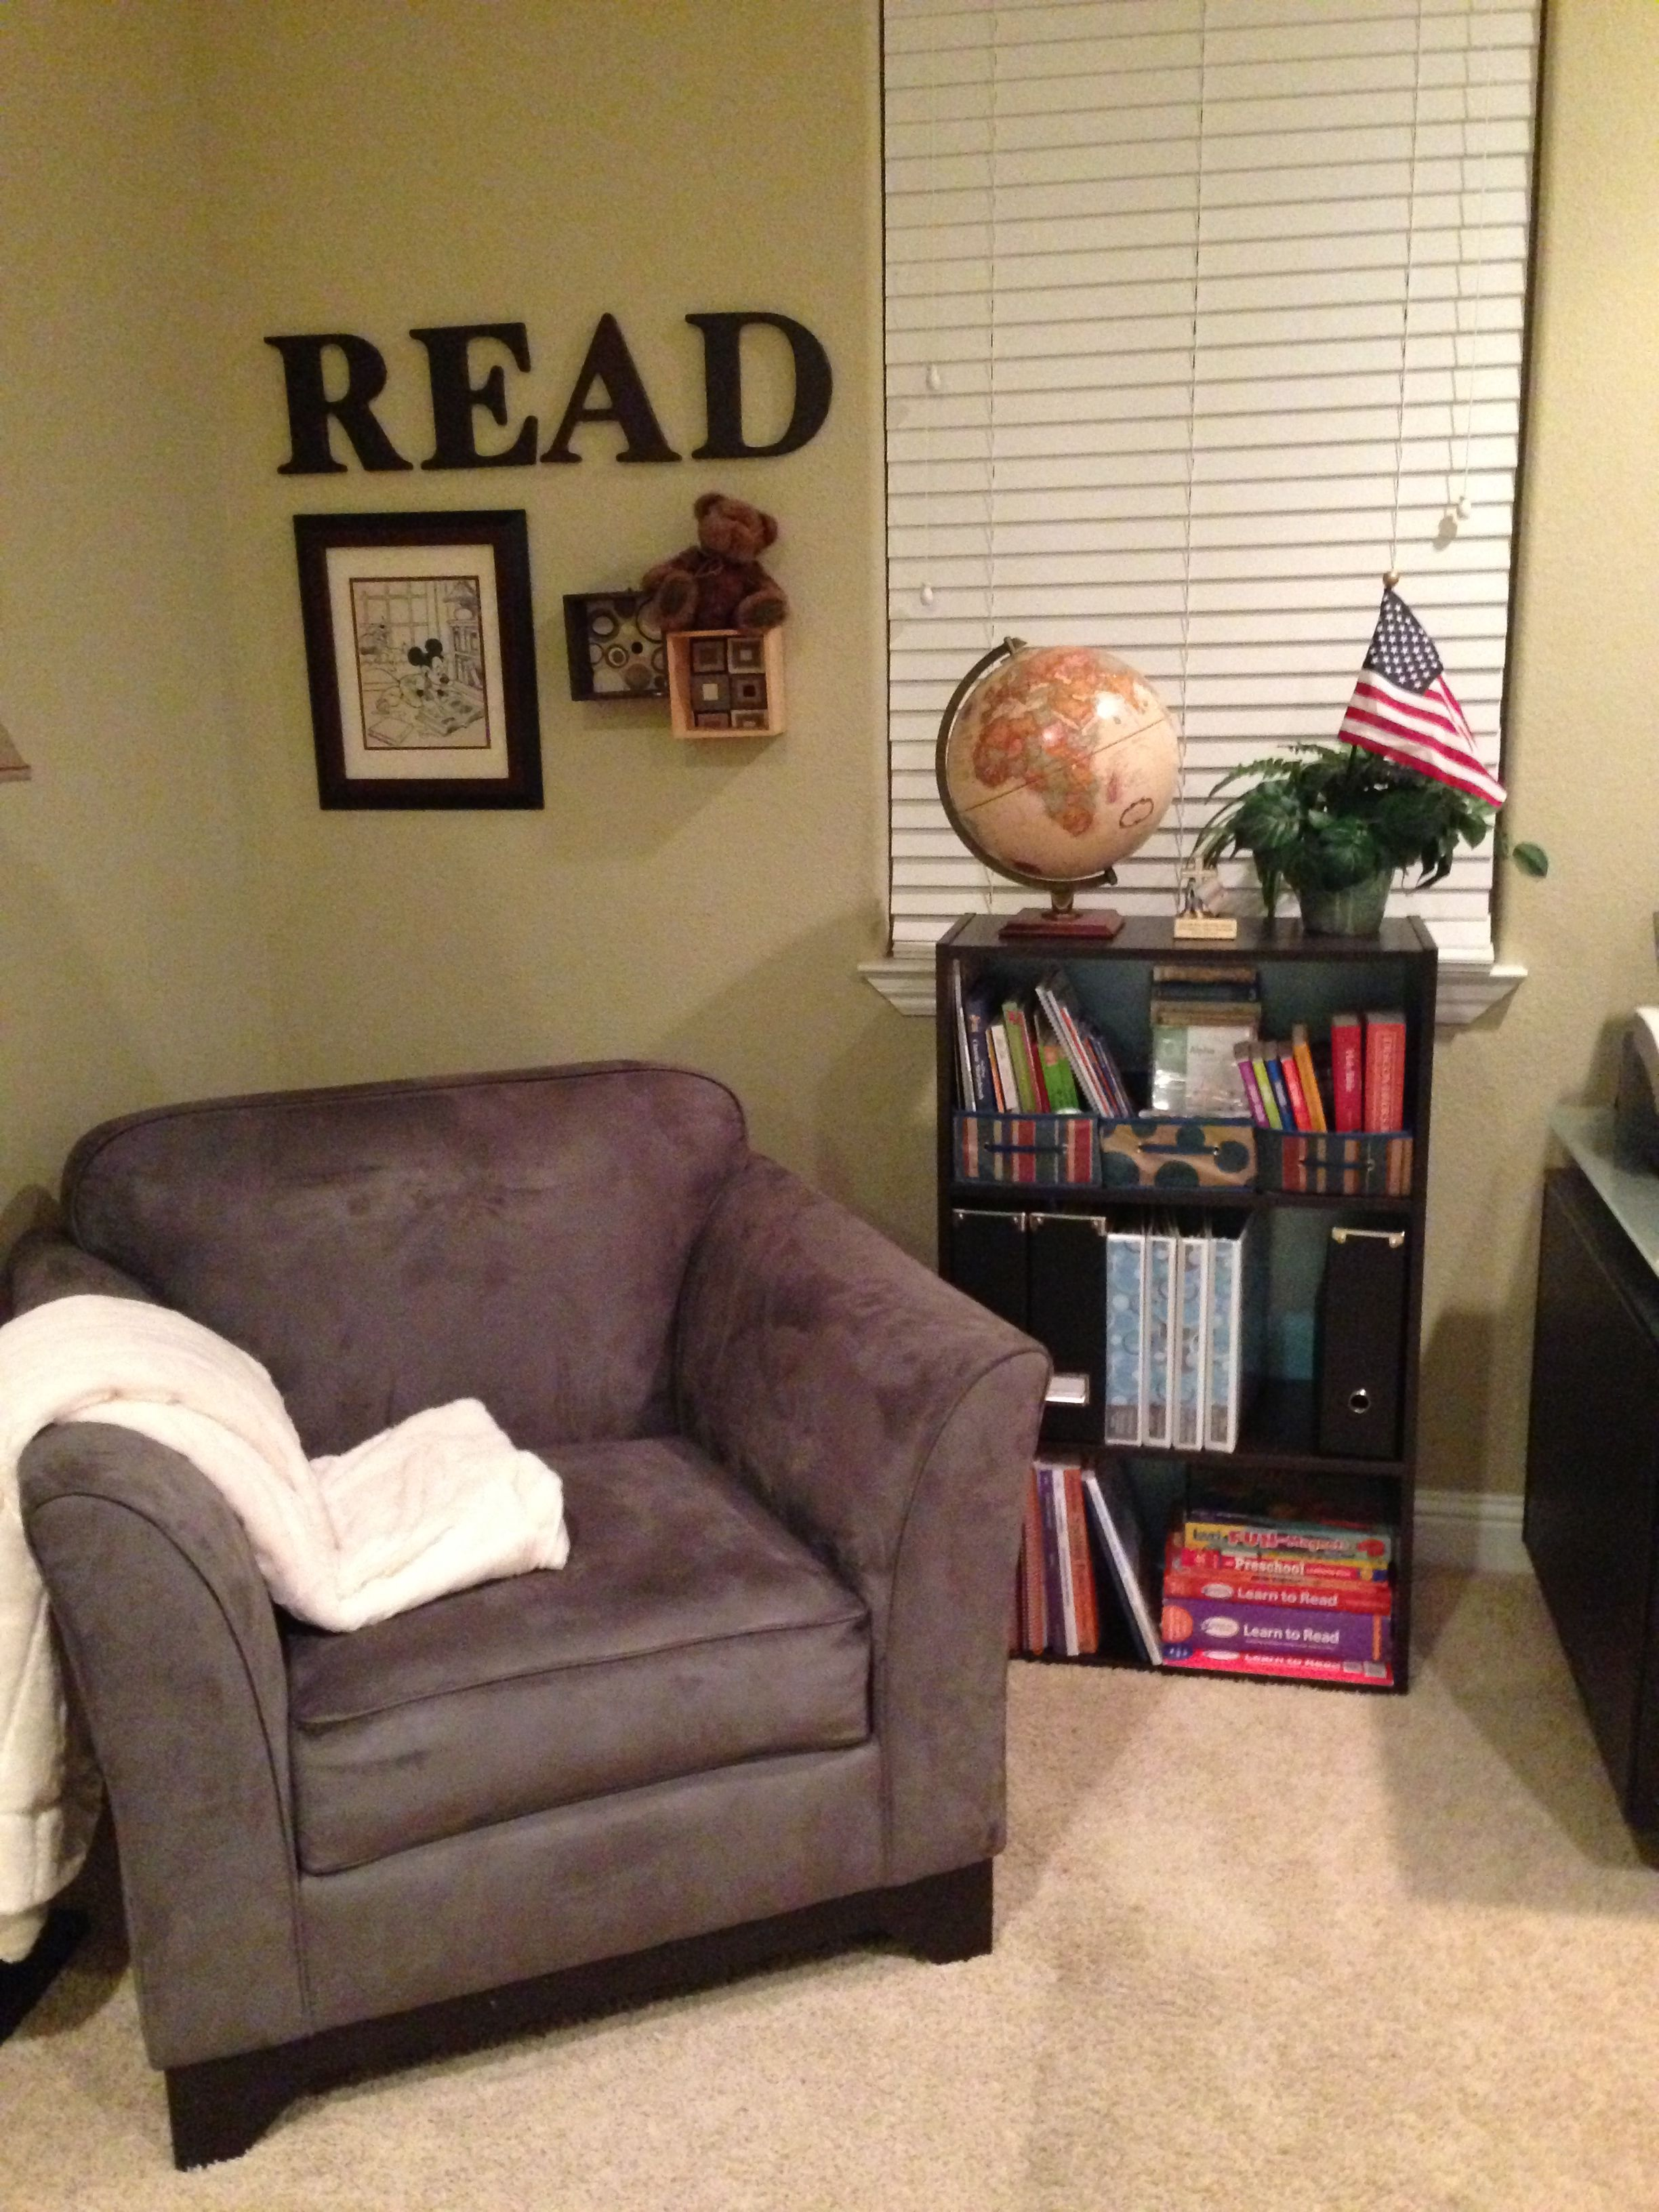 Living Room Chairs For Short People Ideas With Light Grey Sofa Love The Chair Perfect Like Me But This Reading Spot Needs A Little More Nook